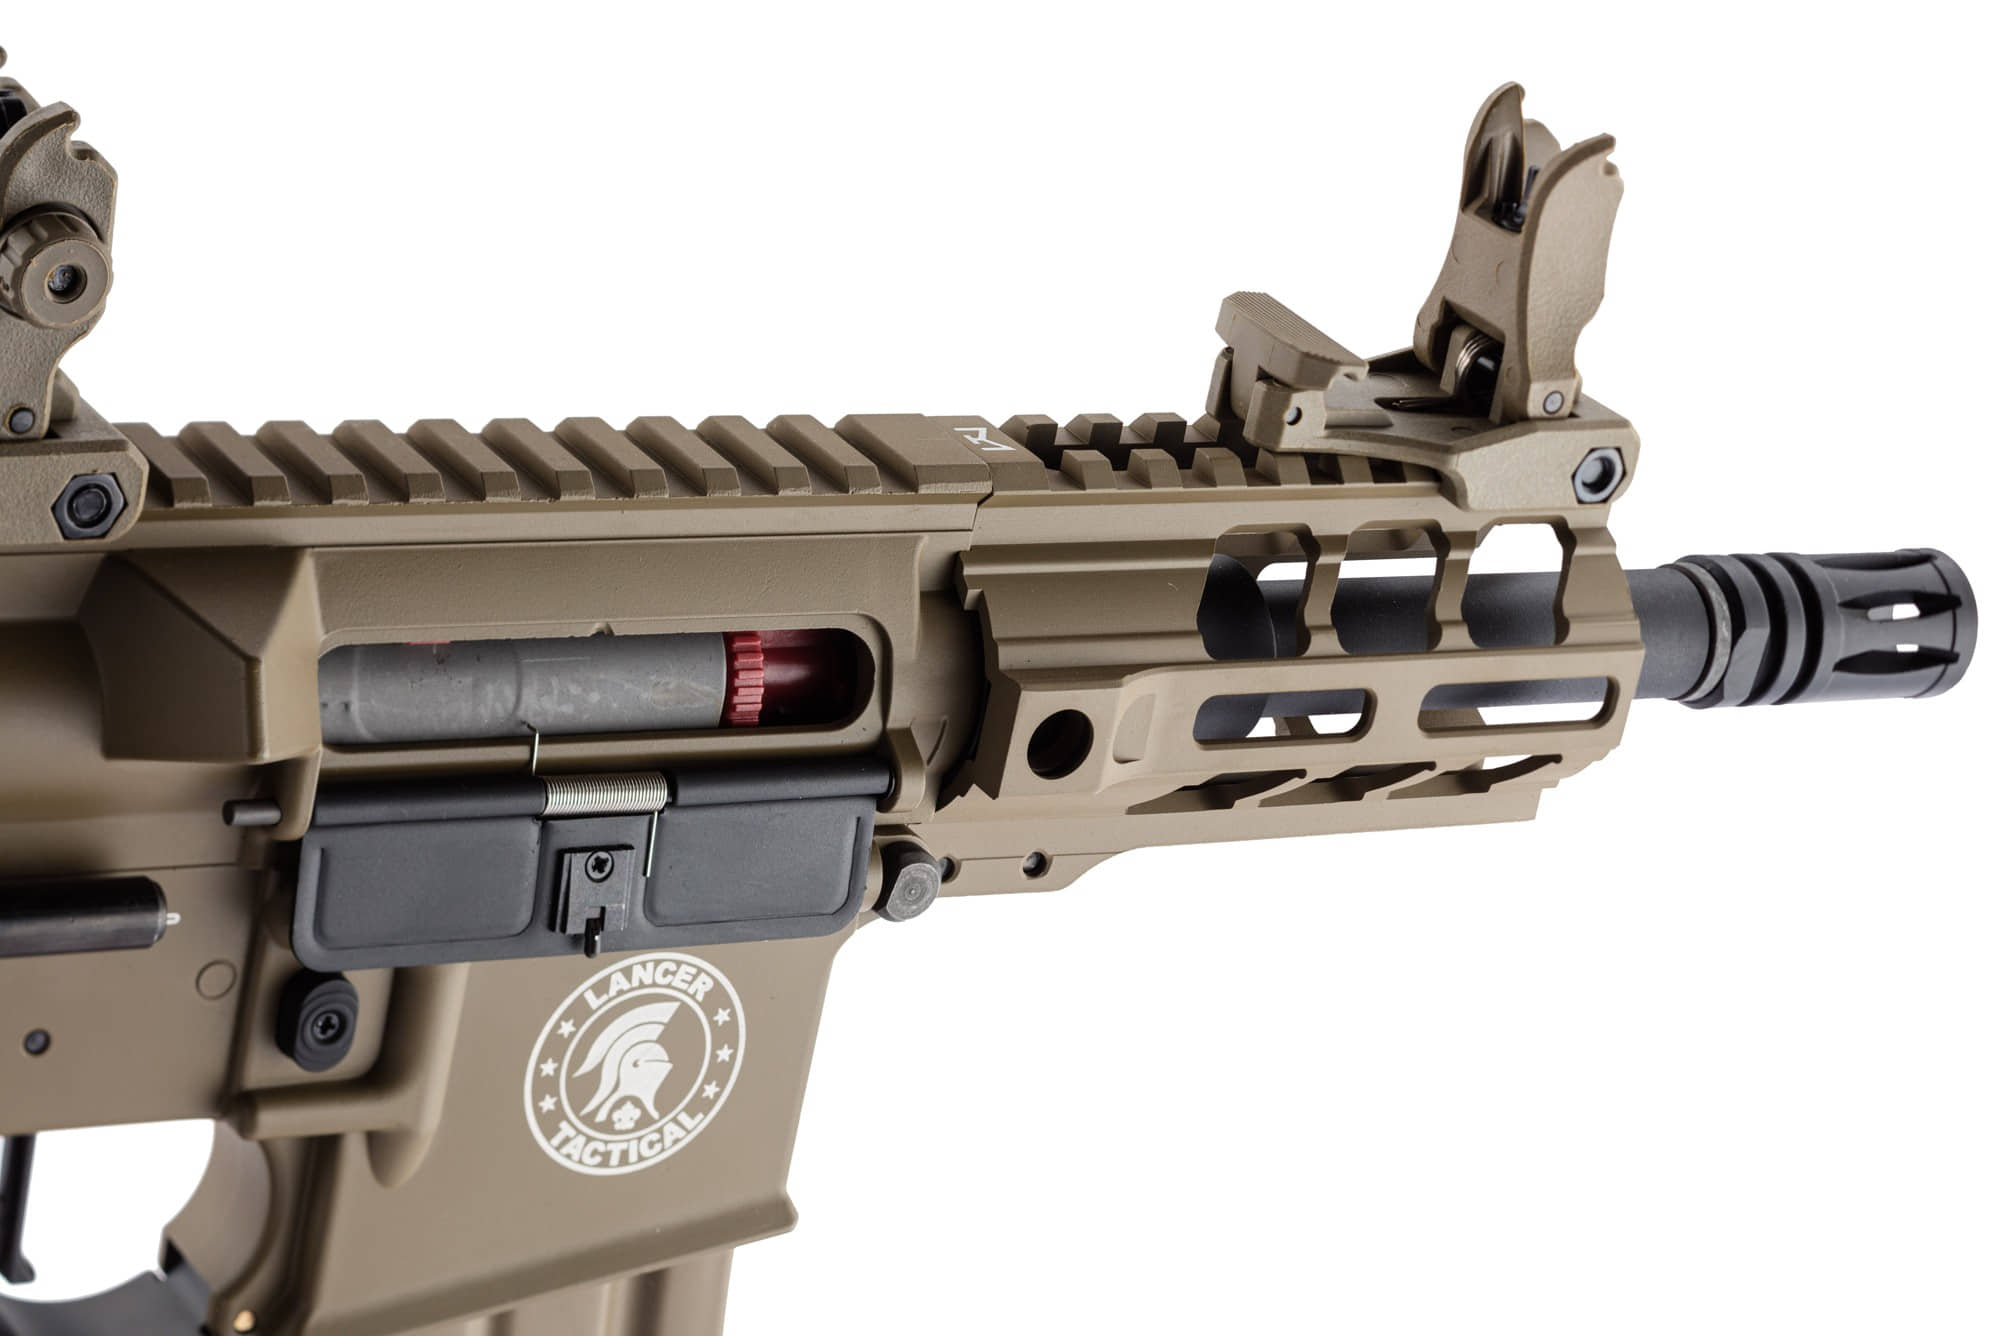 LK9077-11 Réplique AEG LT-34 Proline GEN2 Enforcer Battle Hawk PDW 4' tan - CLK9000